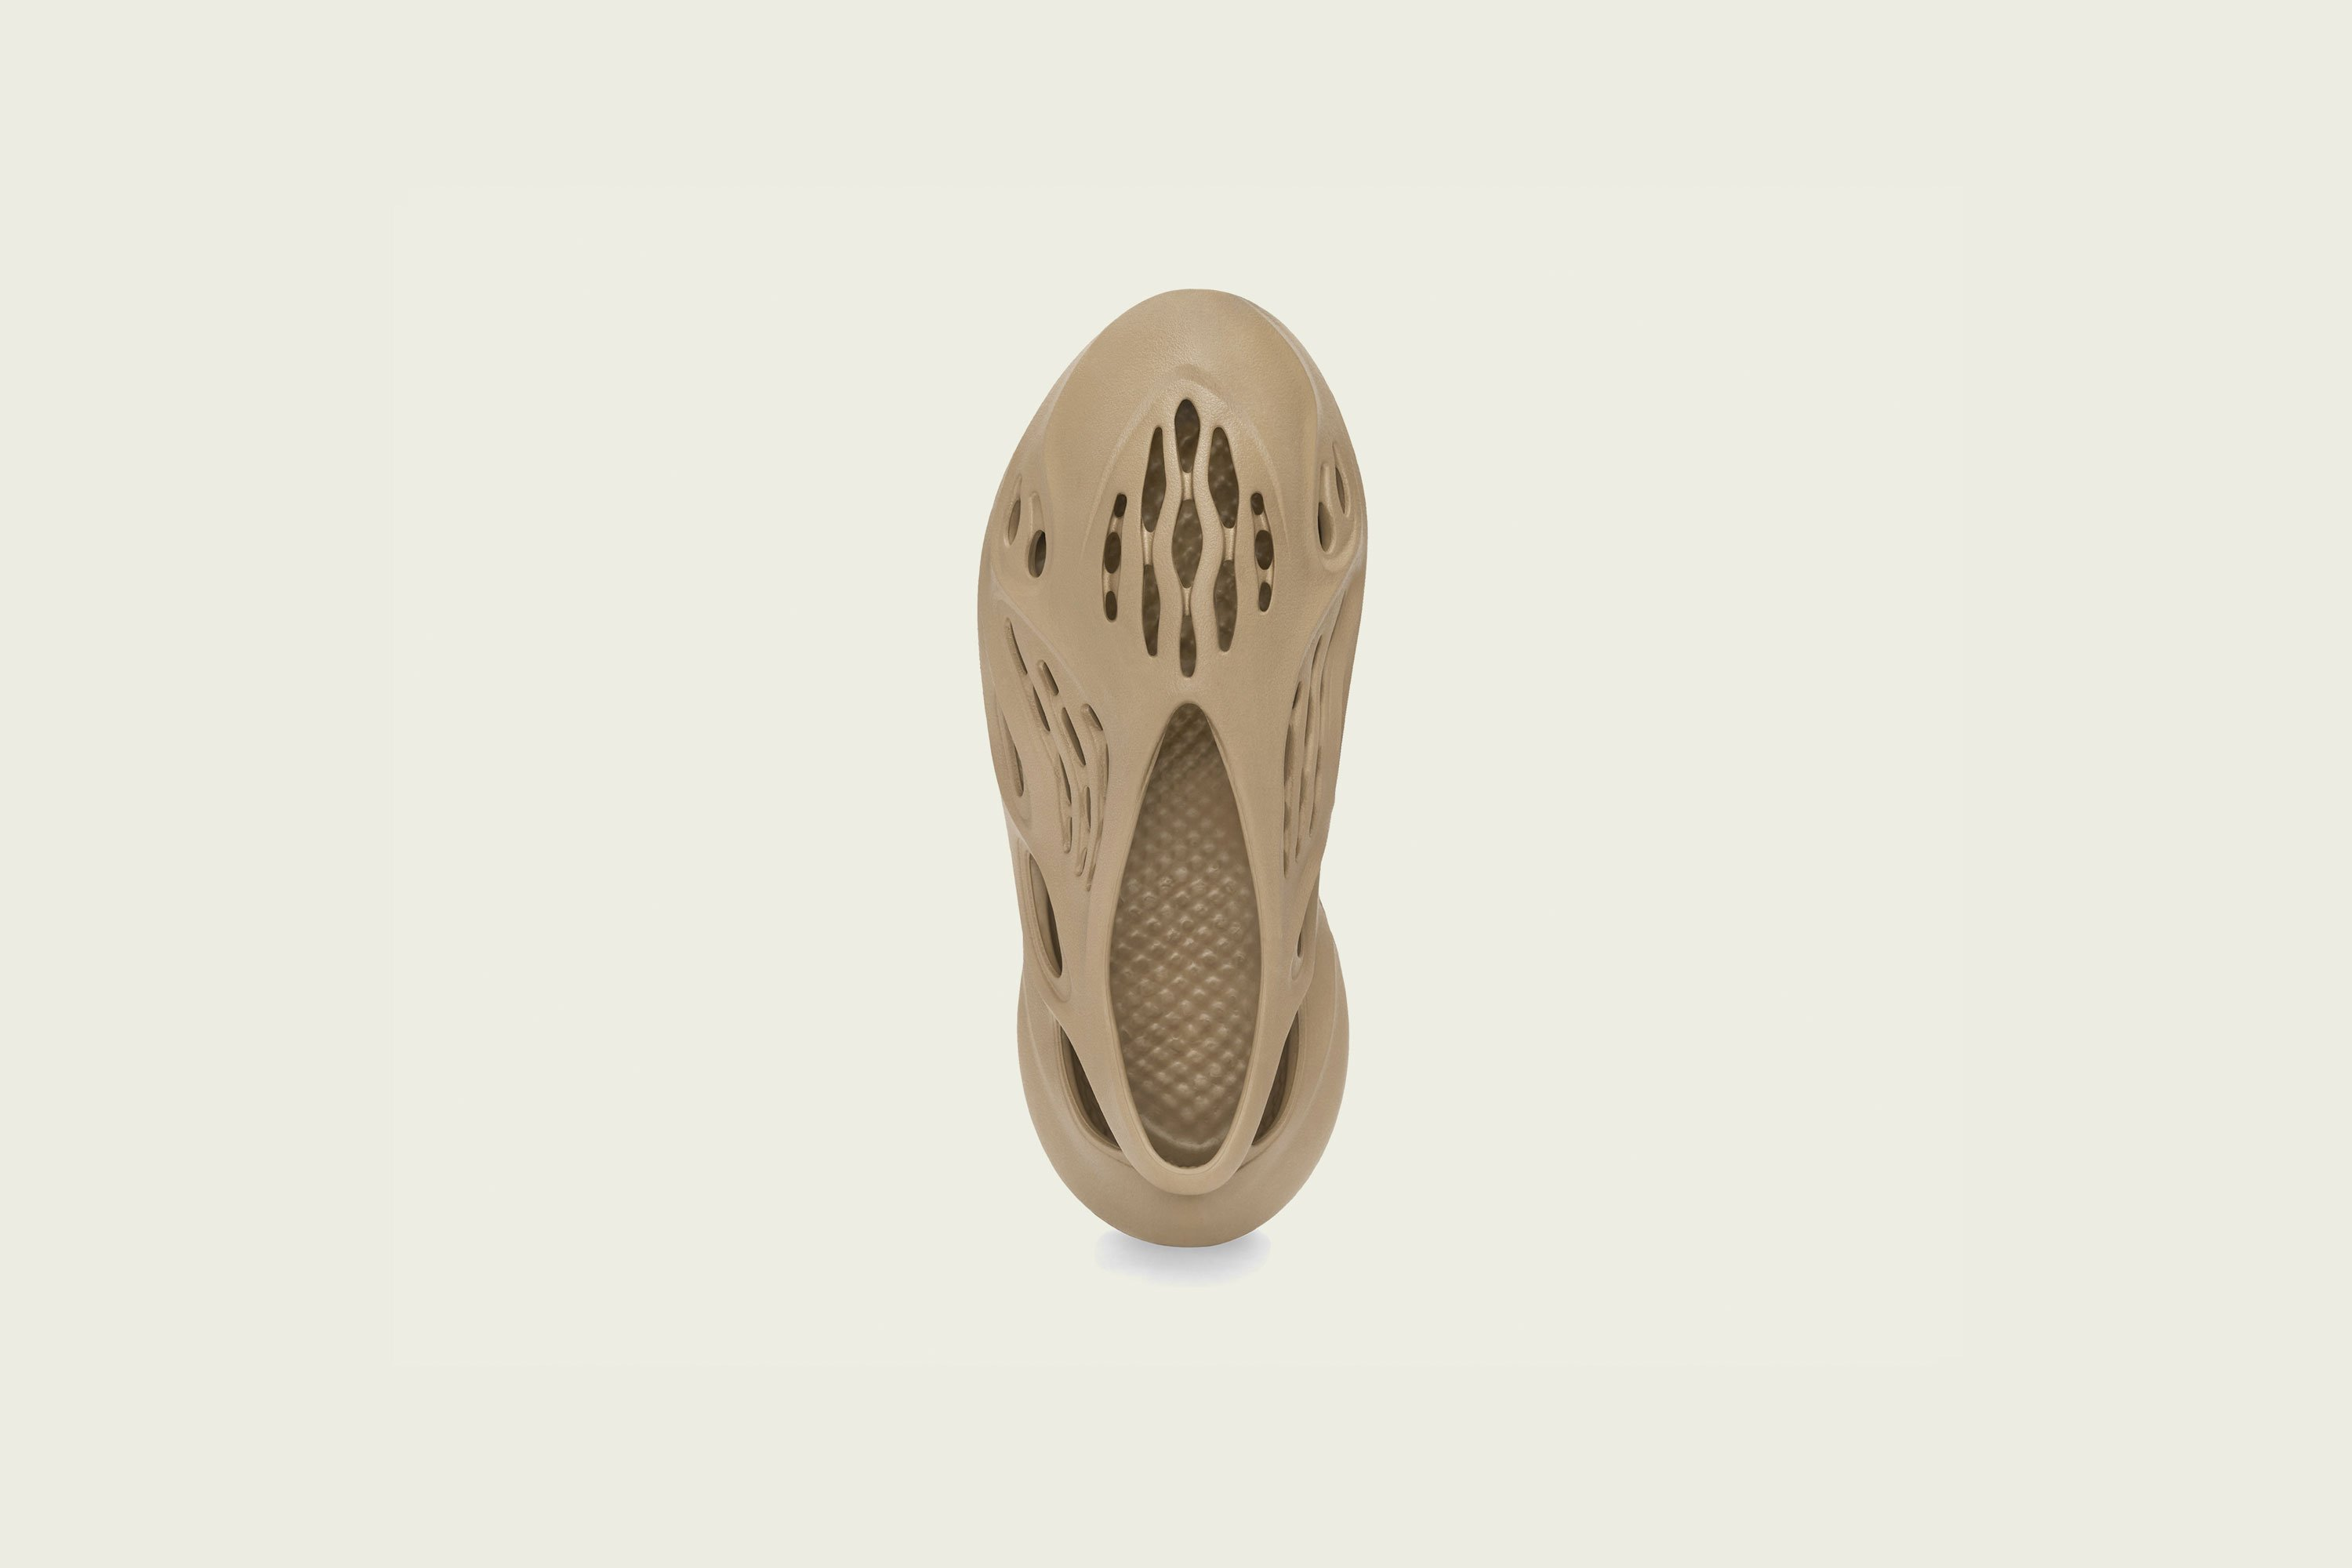 Up There Launches - adidas Originals Kanye West Yeezy YZY Foam Runner - Ochre